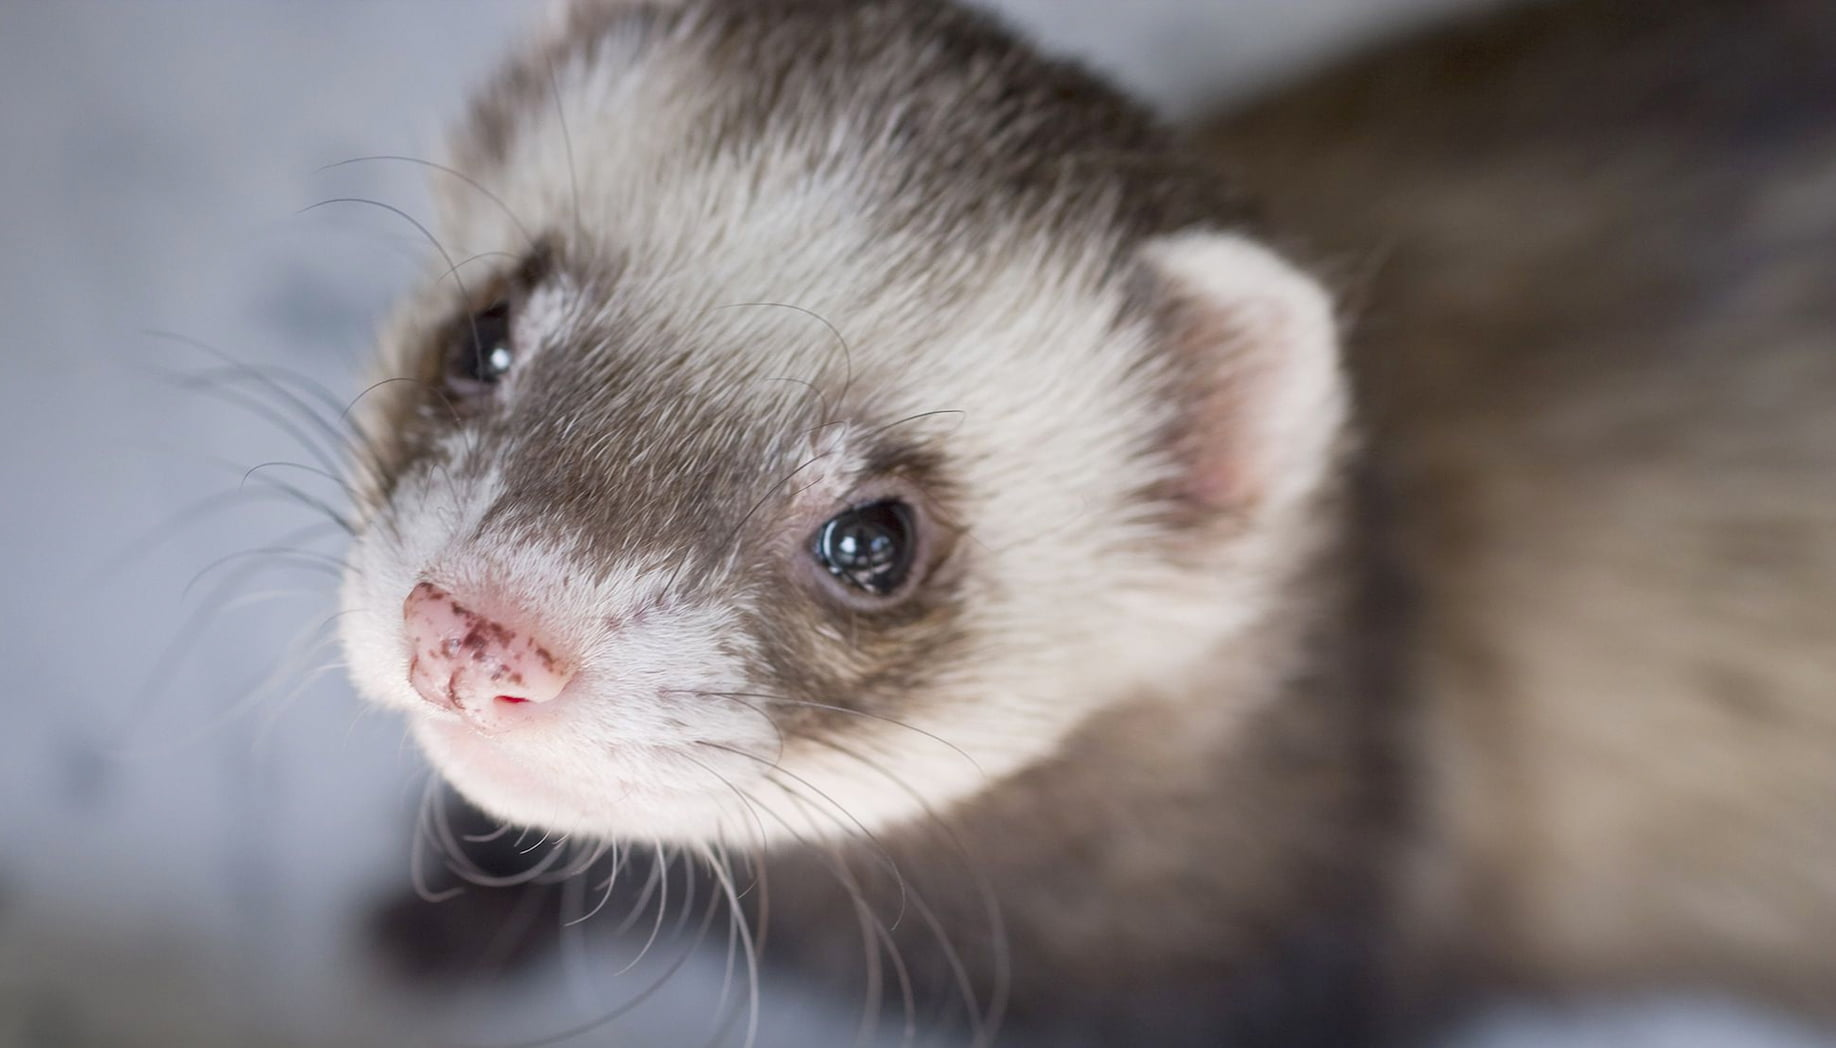 You'll Be Amazed at How This Ferret Found a Job